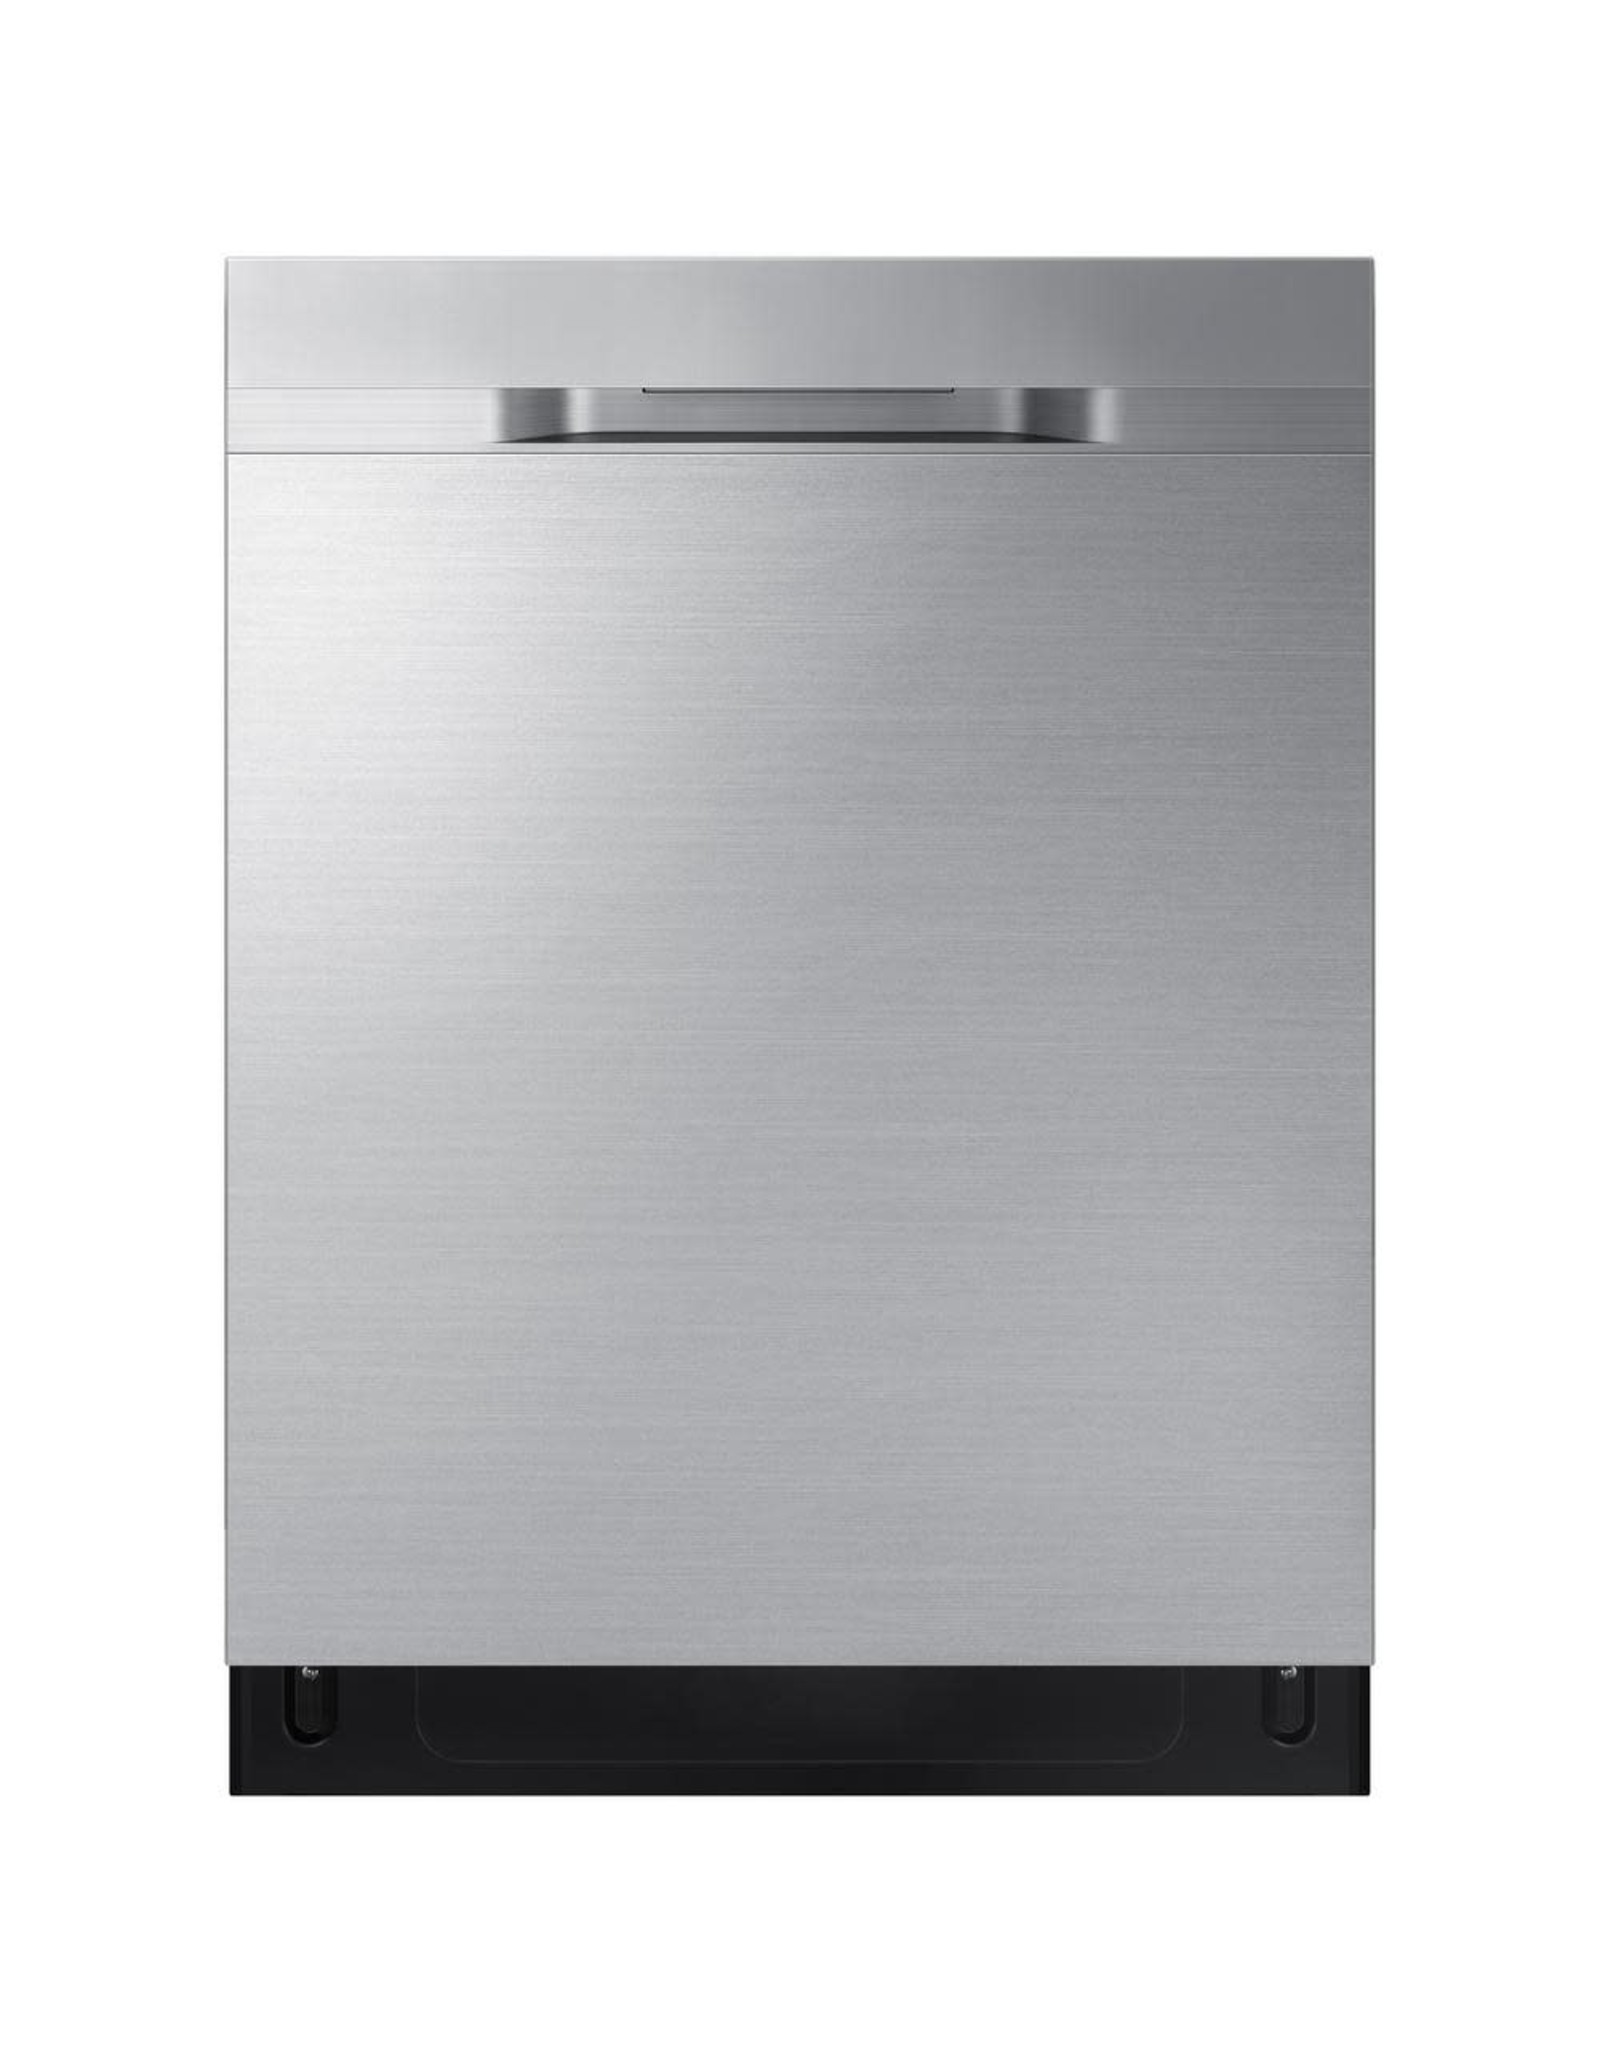 SAMSUNG DW80R5060US Samsung 24 in Top Control StormWash Tall Tub Dishwasher in Fingerprint Resistant Stainless Steel with AutoRelease Dry, 48 dBA